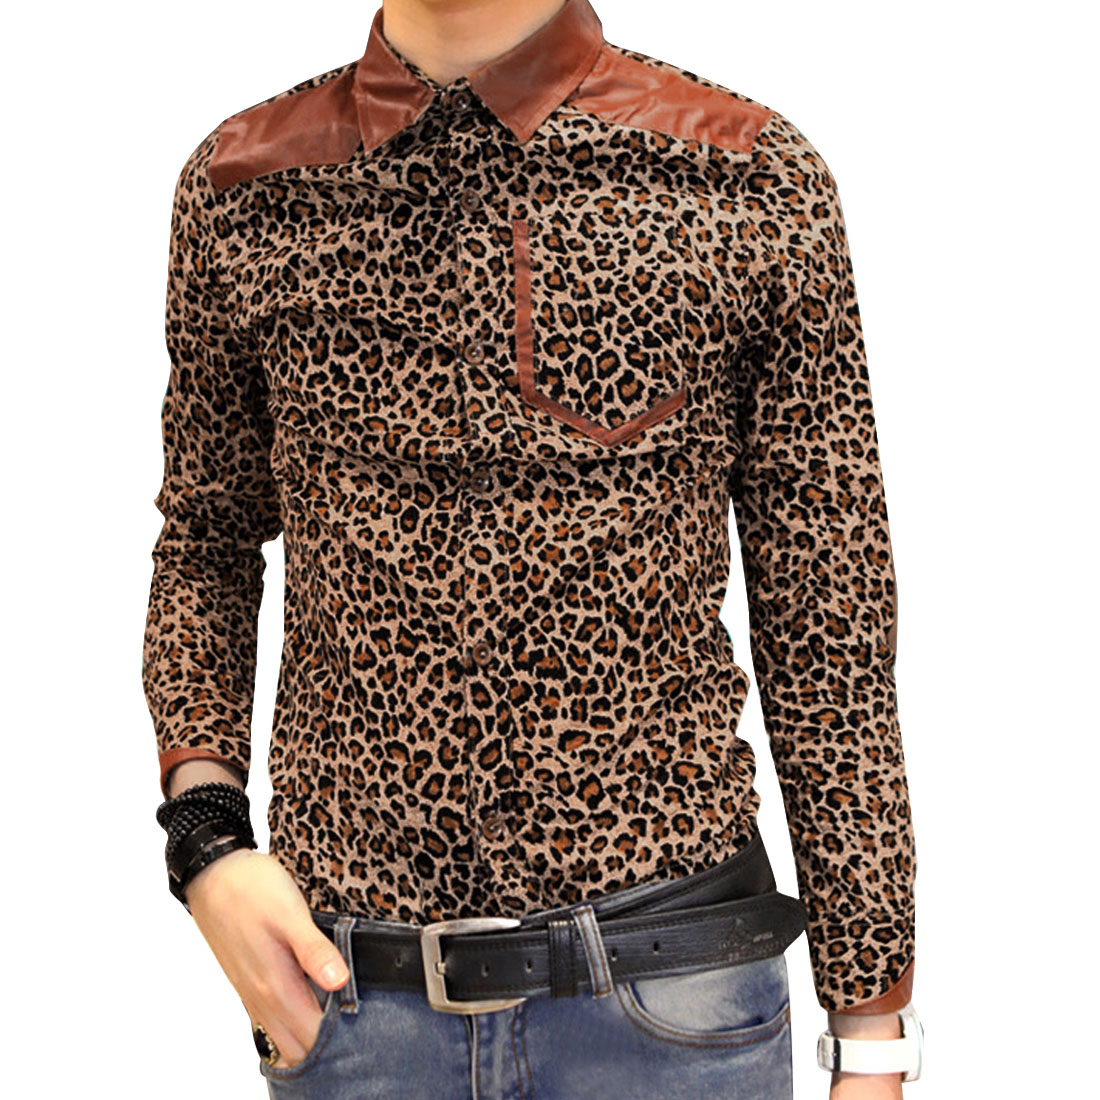 Khaki S Skinny Fit Style Leopard Print Button Up Long Sleeve Men Shirt